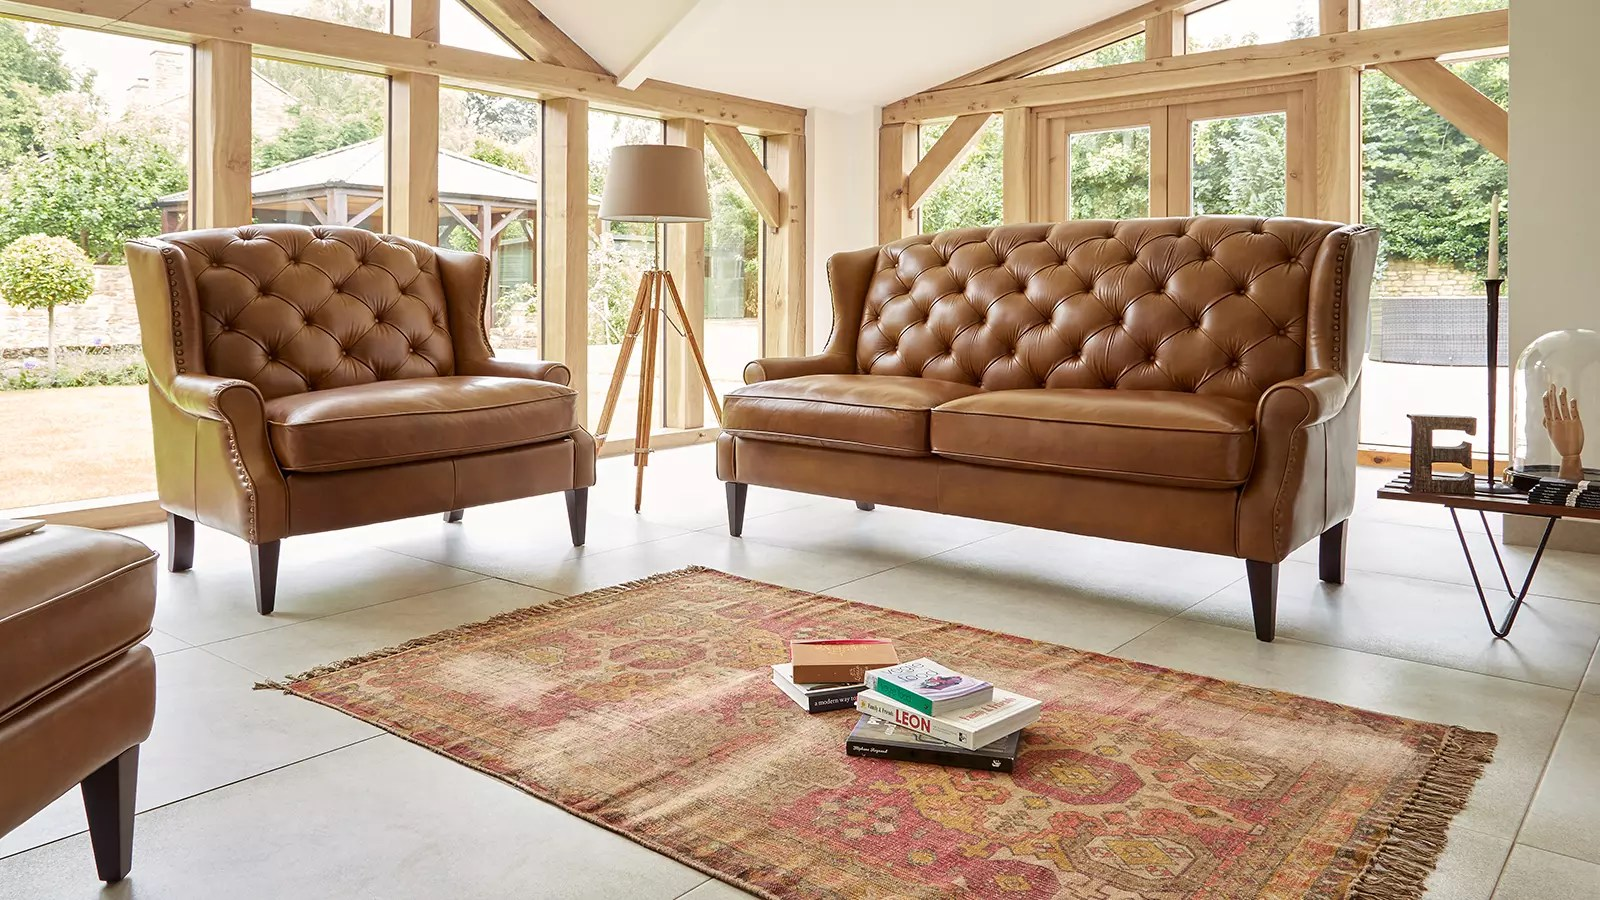 most expensive leather sofas in the world sectional and sleeper inside matters 20 year guarantee 100 real sofology how can you tell a good one from bad